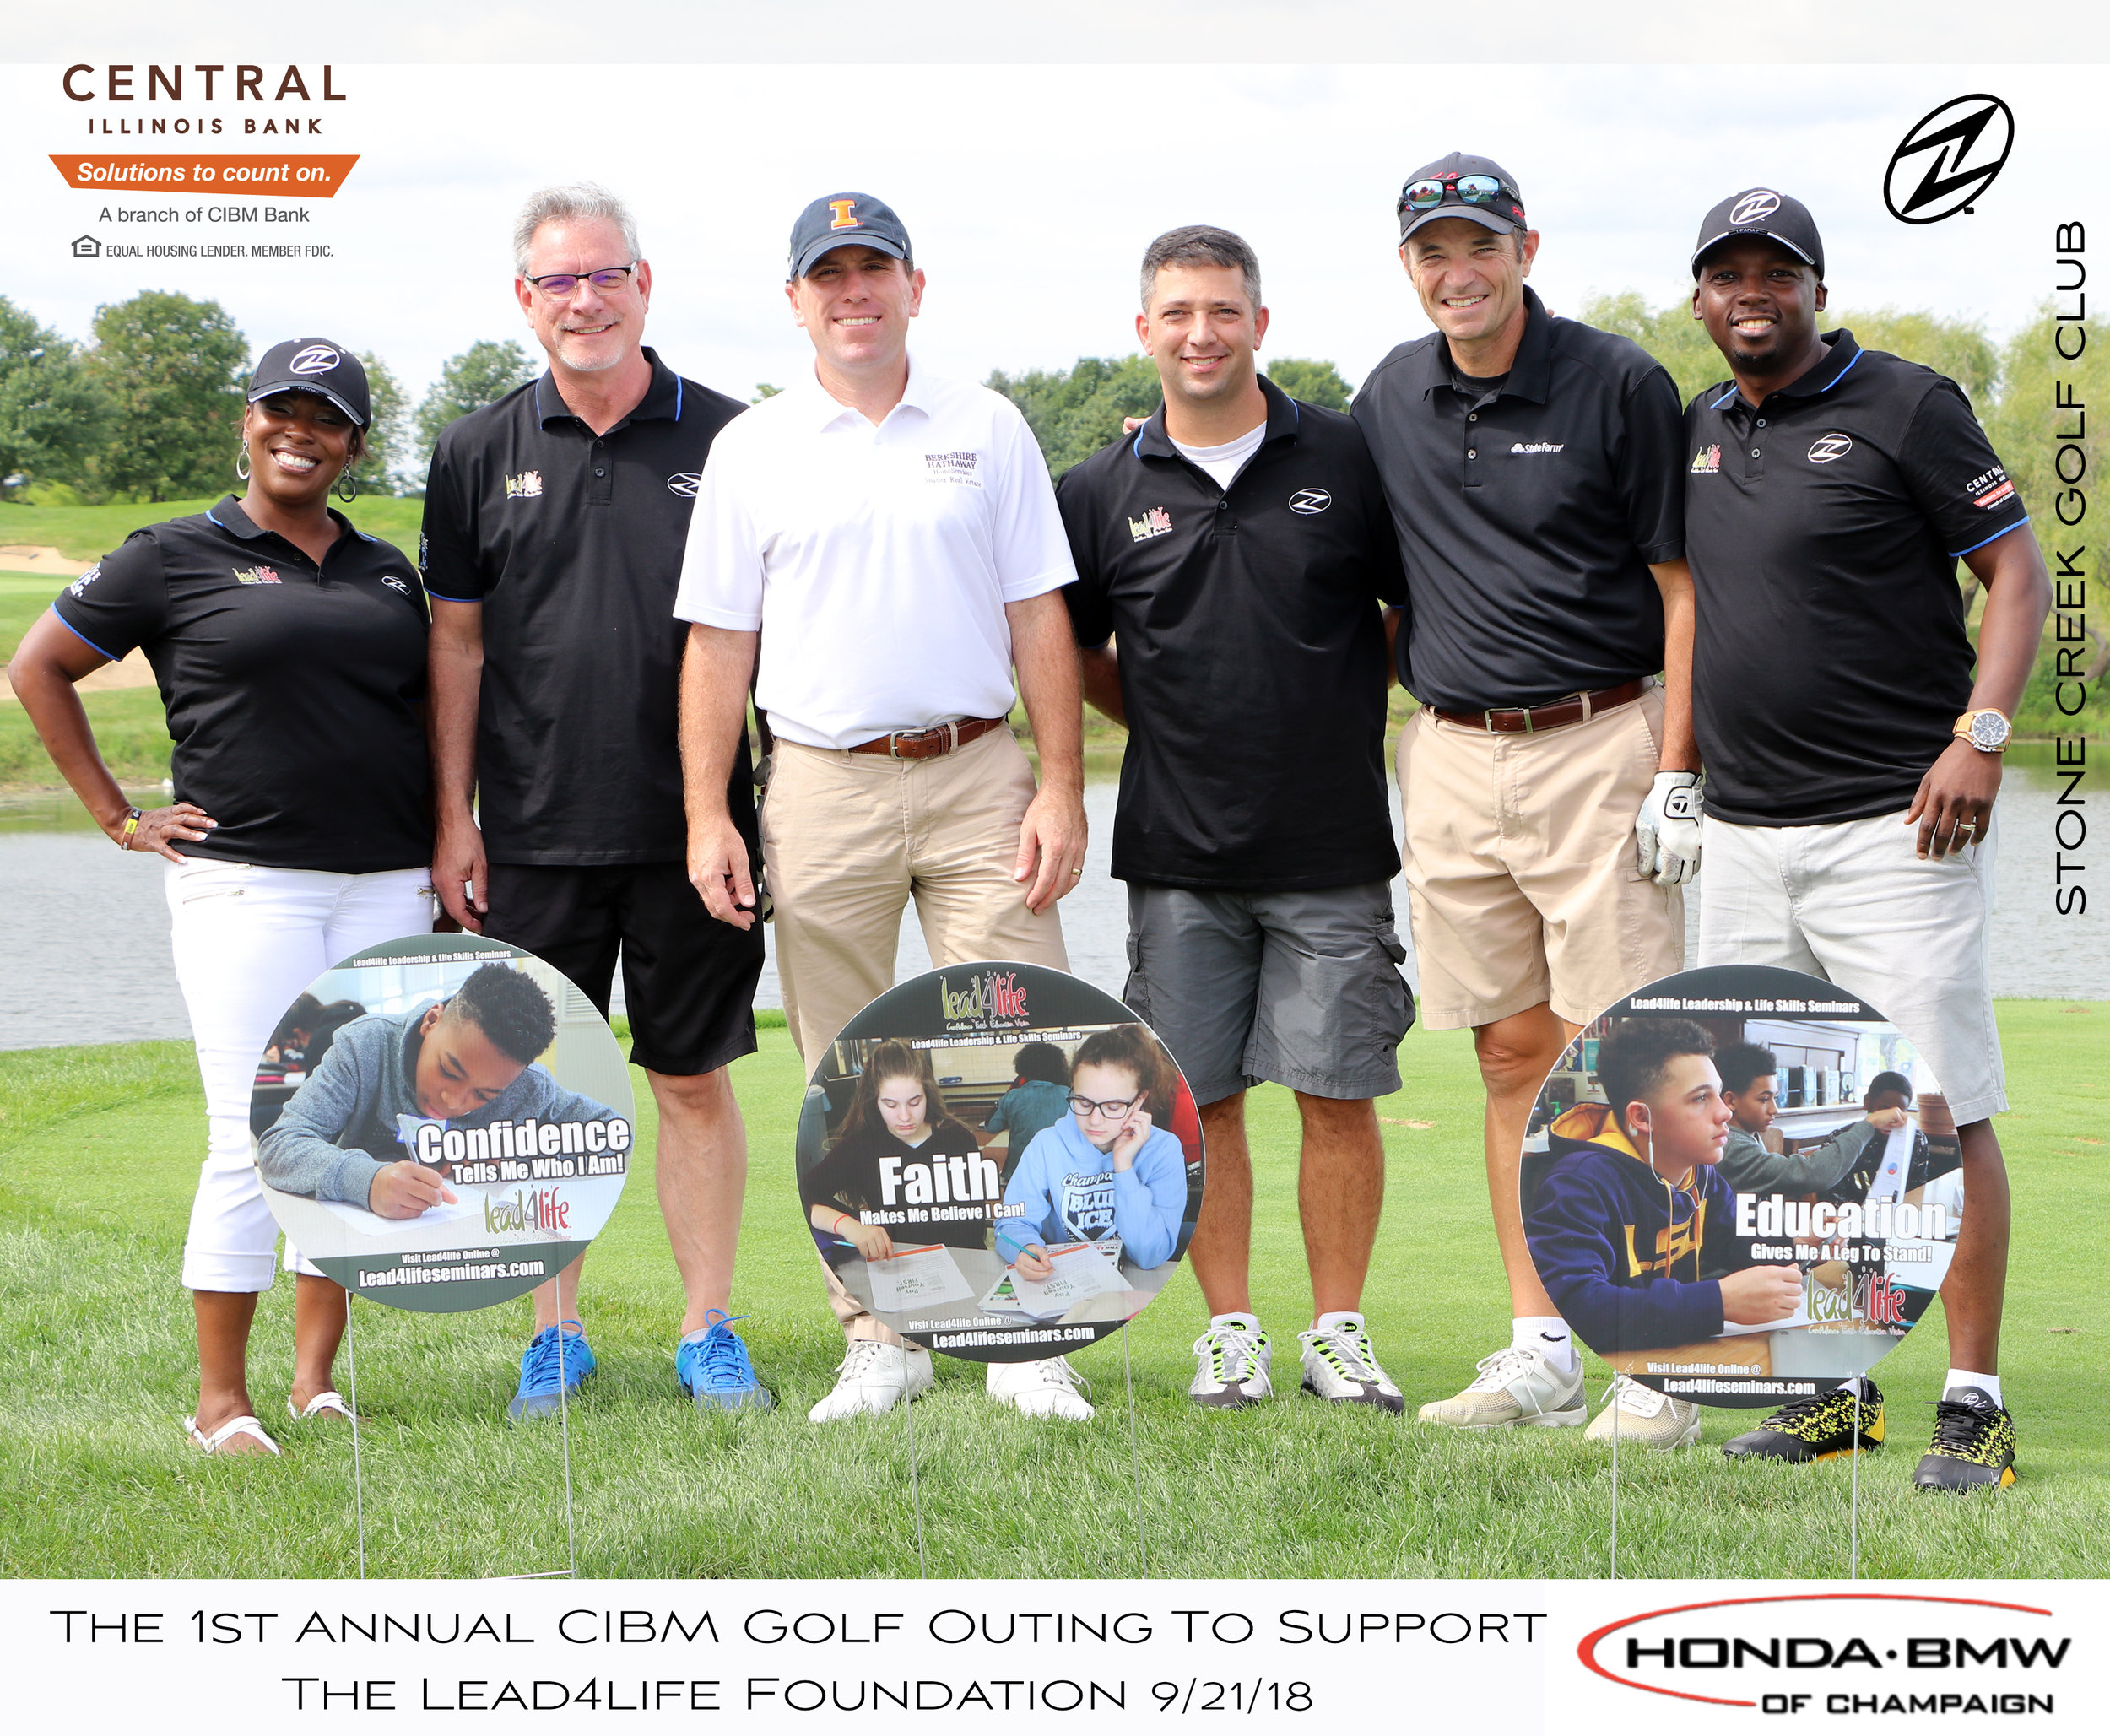 Lead4life Golf Group 3.jpg